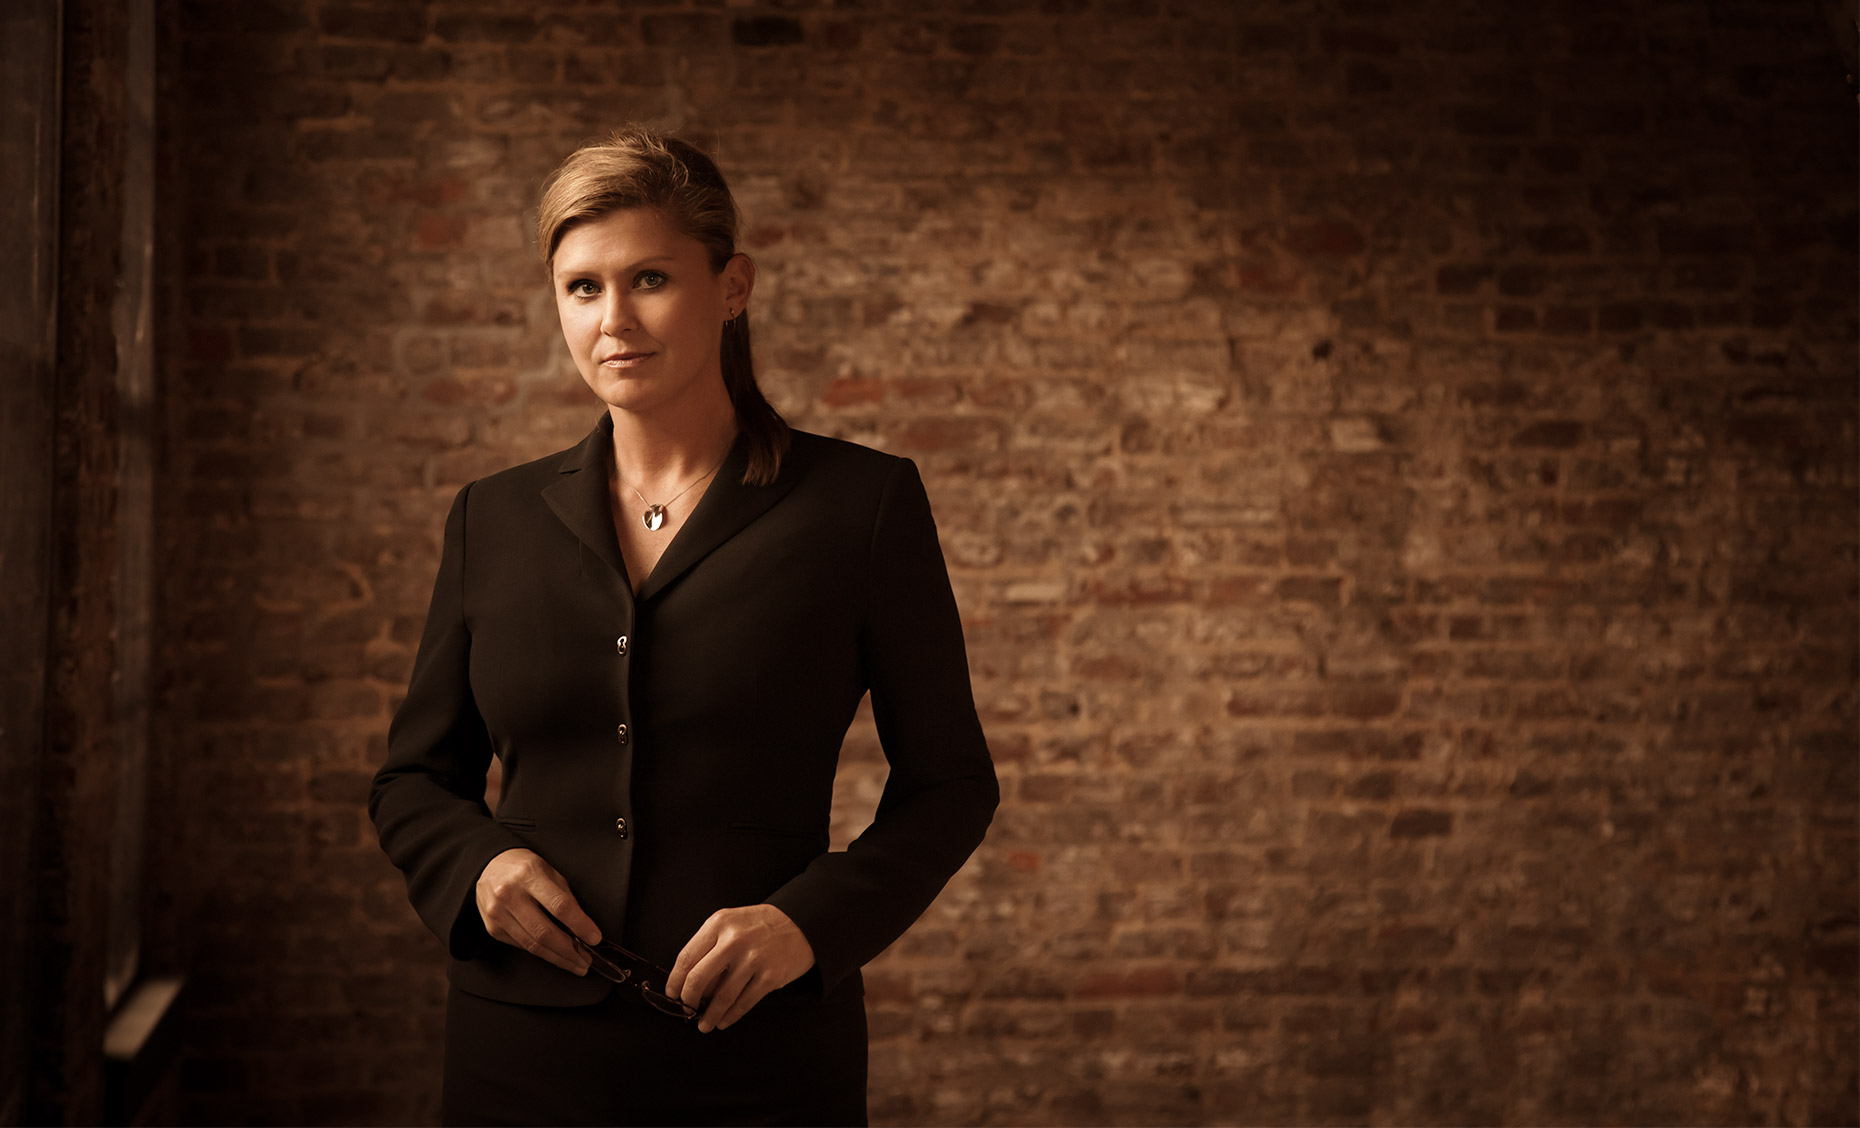 woman, executive, suit, brick, wall